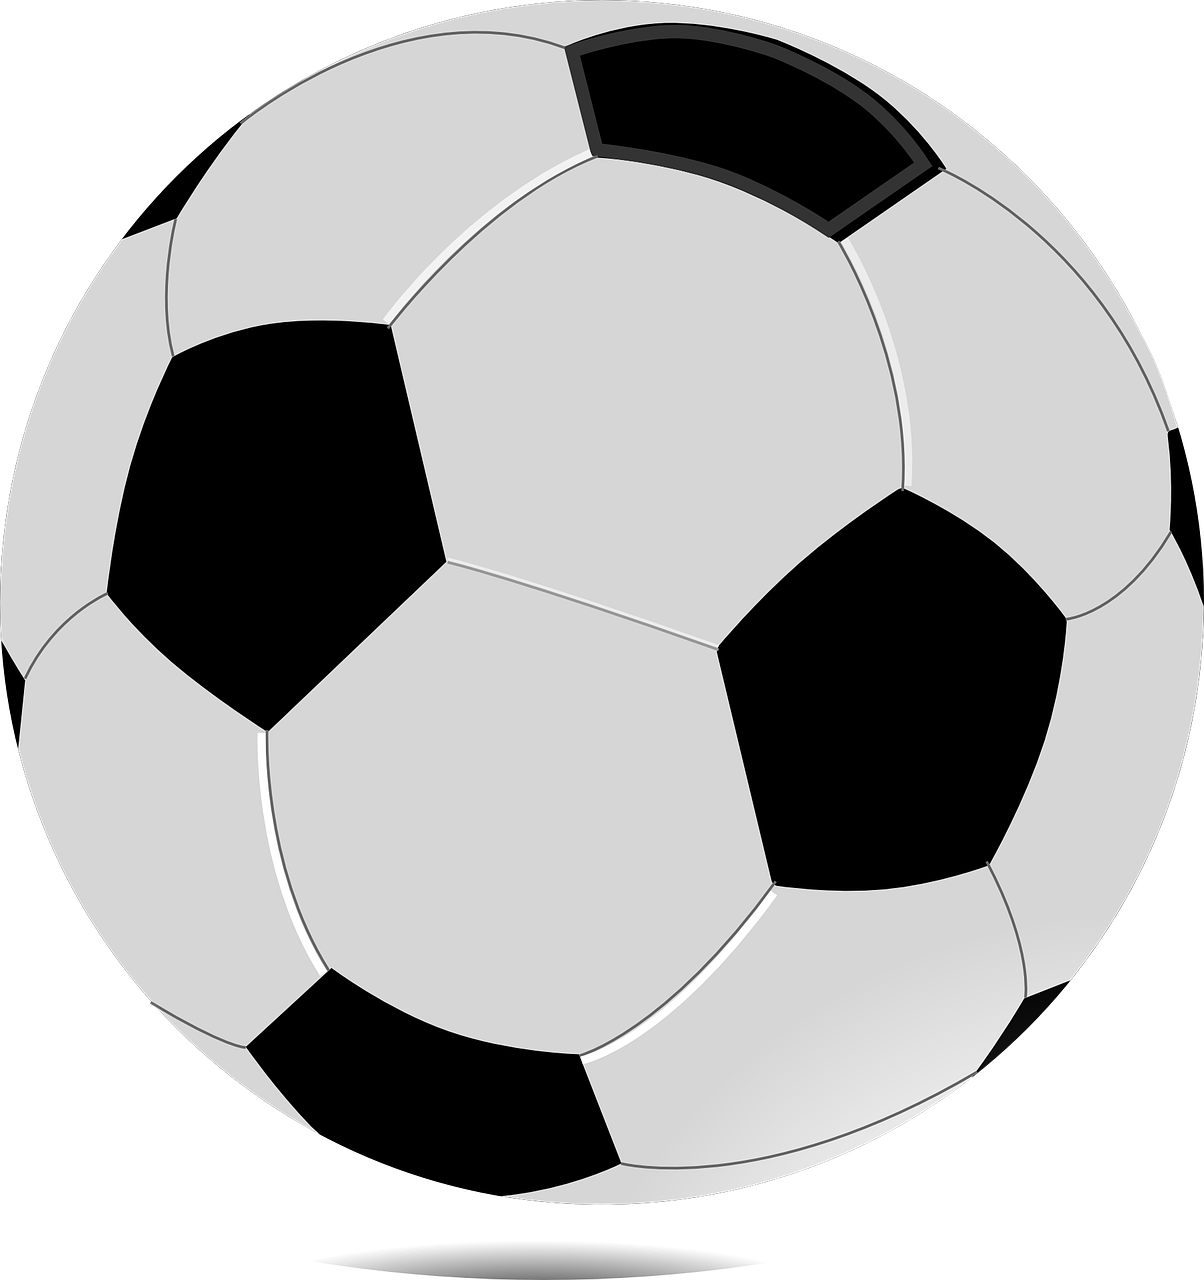 Paris isd summer sports. Wildcat clipart soccer